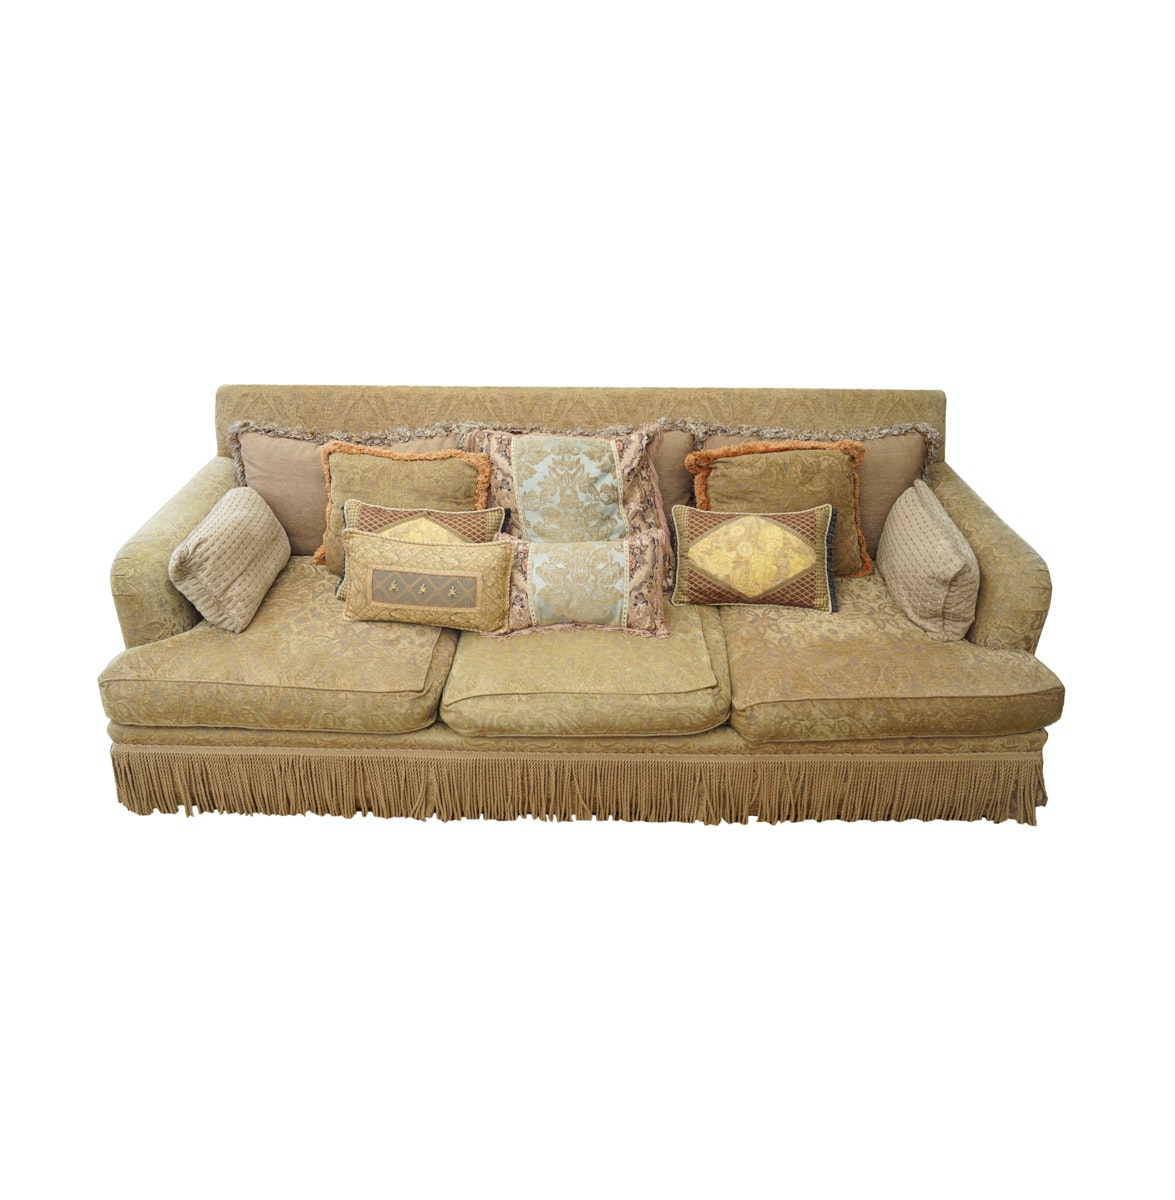 Isenhour Designer Chennille Sofa with Pillows